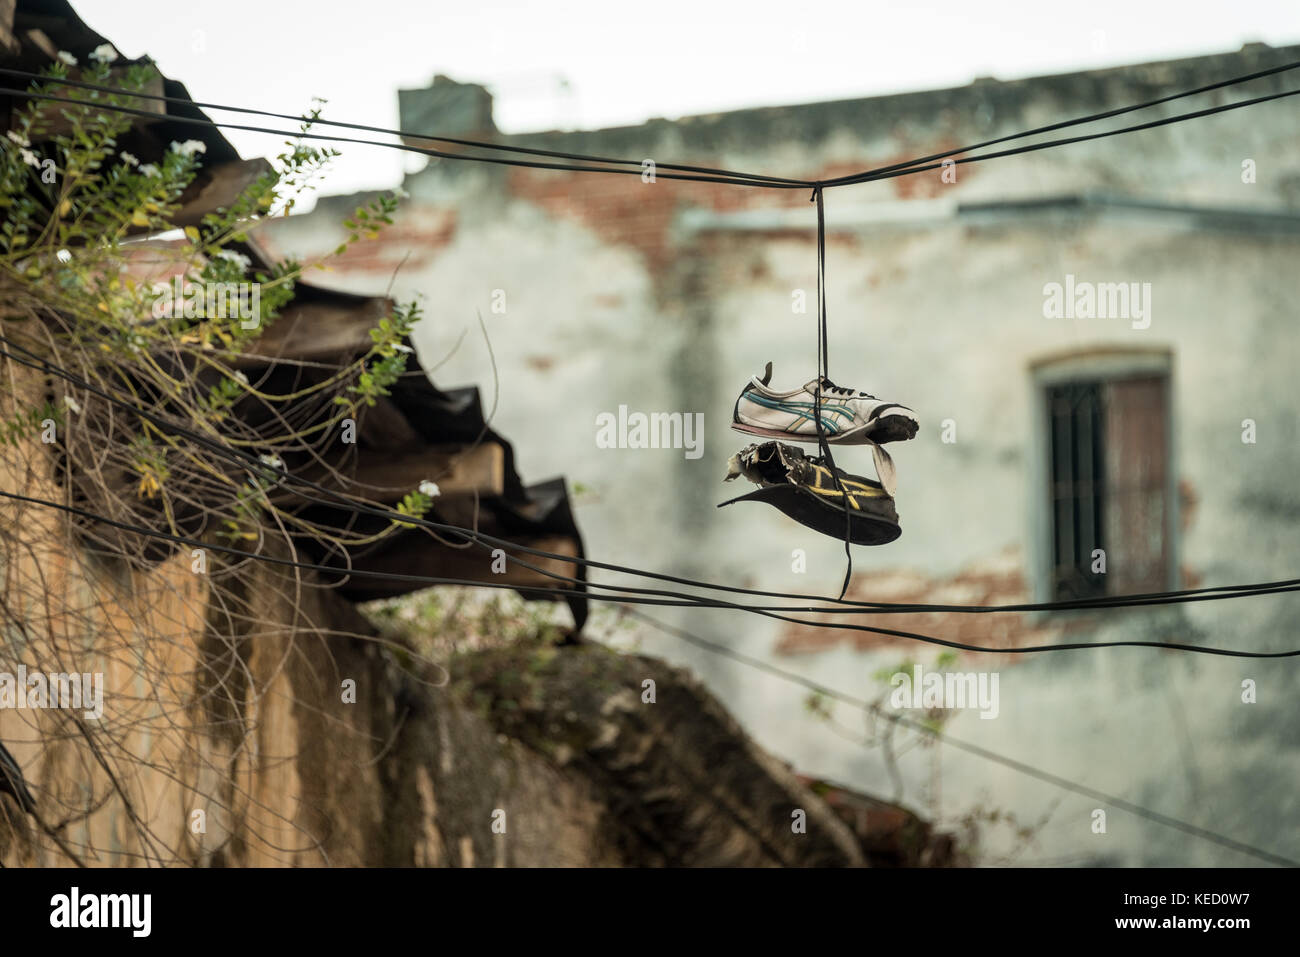 Old worn out shoes tossed on a wire (shoefitti) in from of a old building or ruin - Stock Image